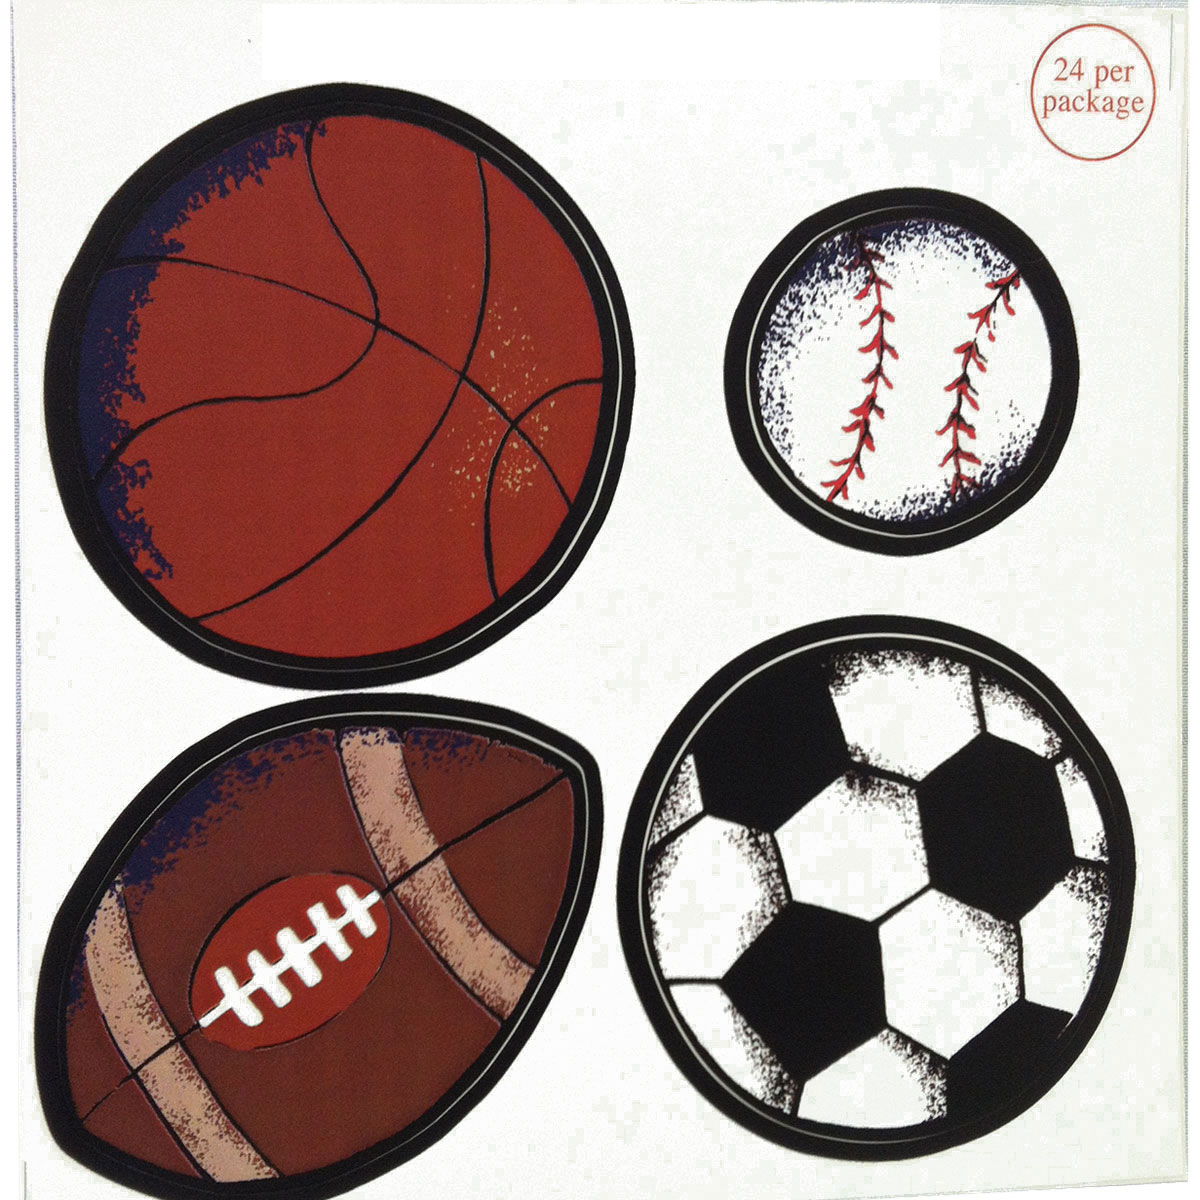 Brylane Sports Balls Wall Stickers 24pc Football Baseball Decals at Sears.com